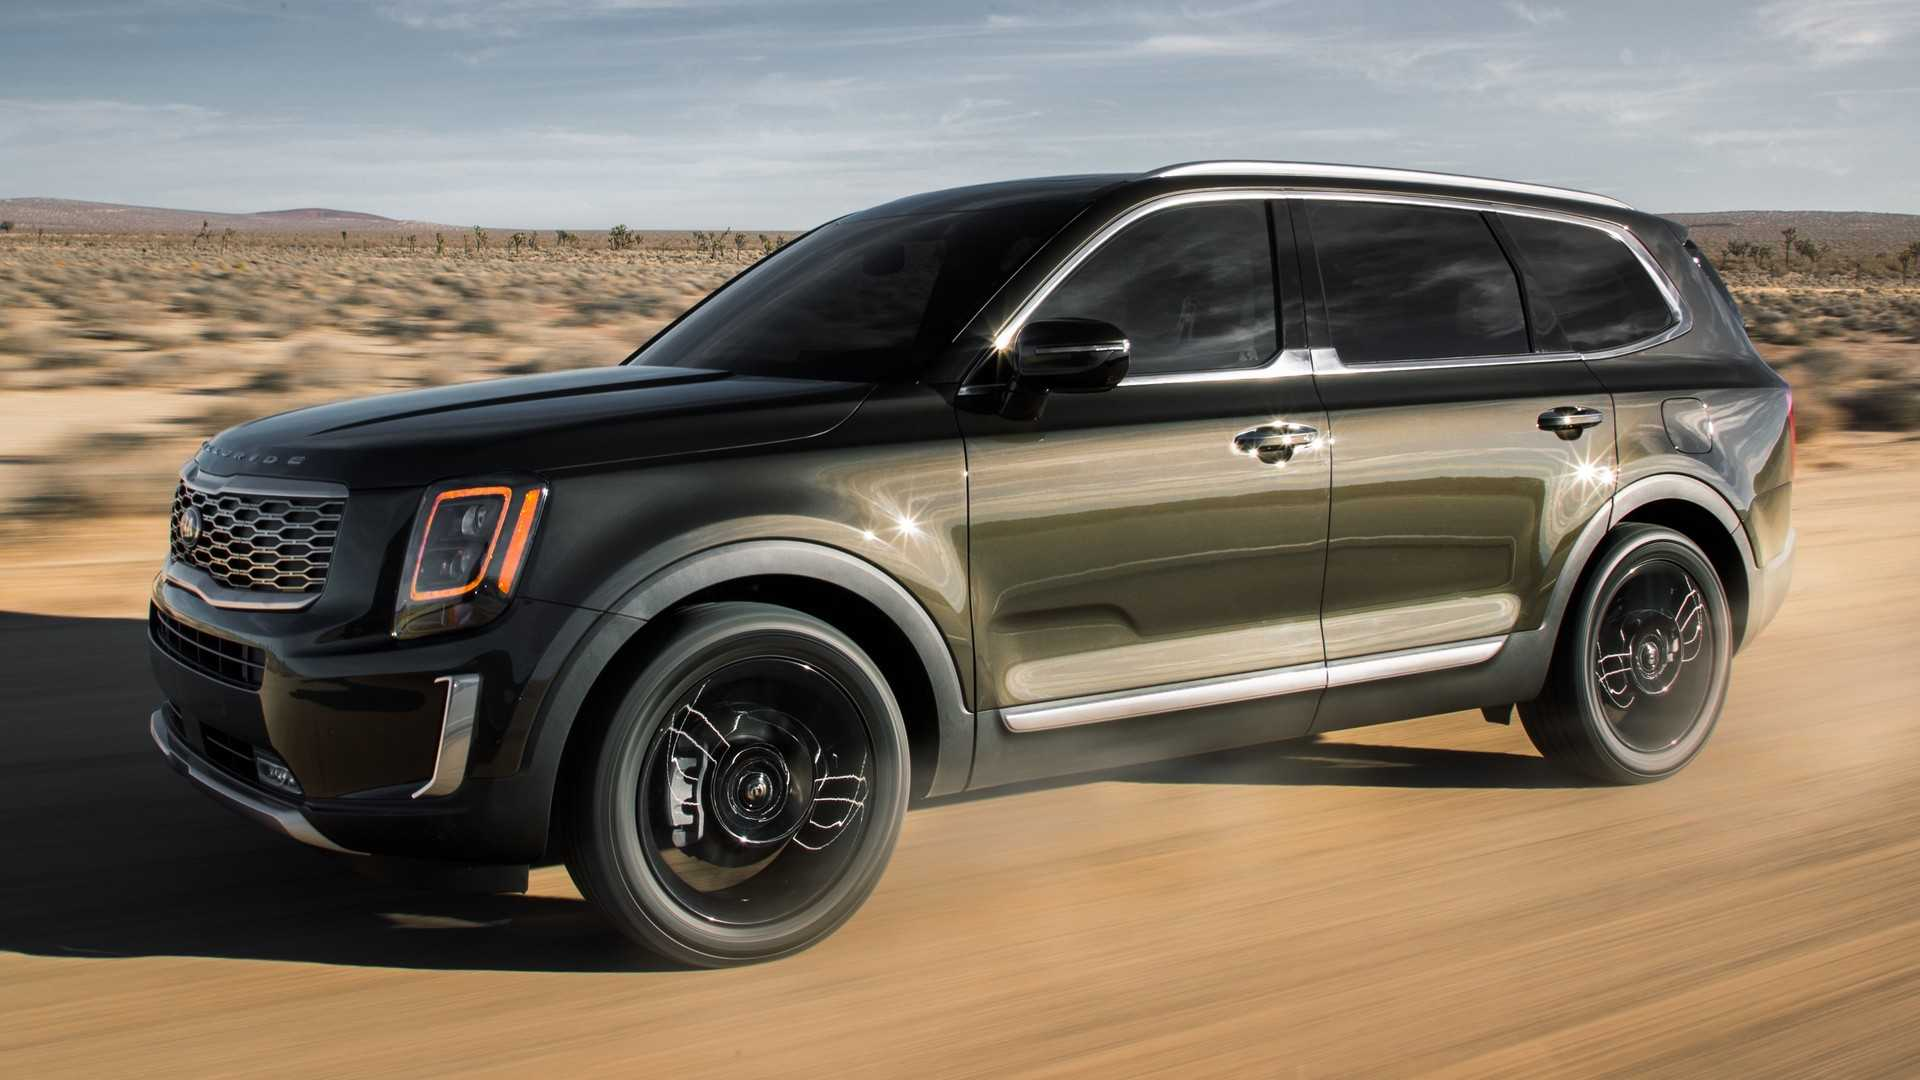 70 New 2020 Kia Telluride Black Copper Spy Shoot for 2020 Kia Telluride Black Copper